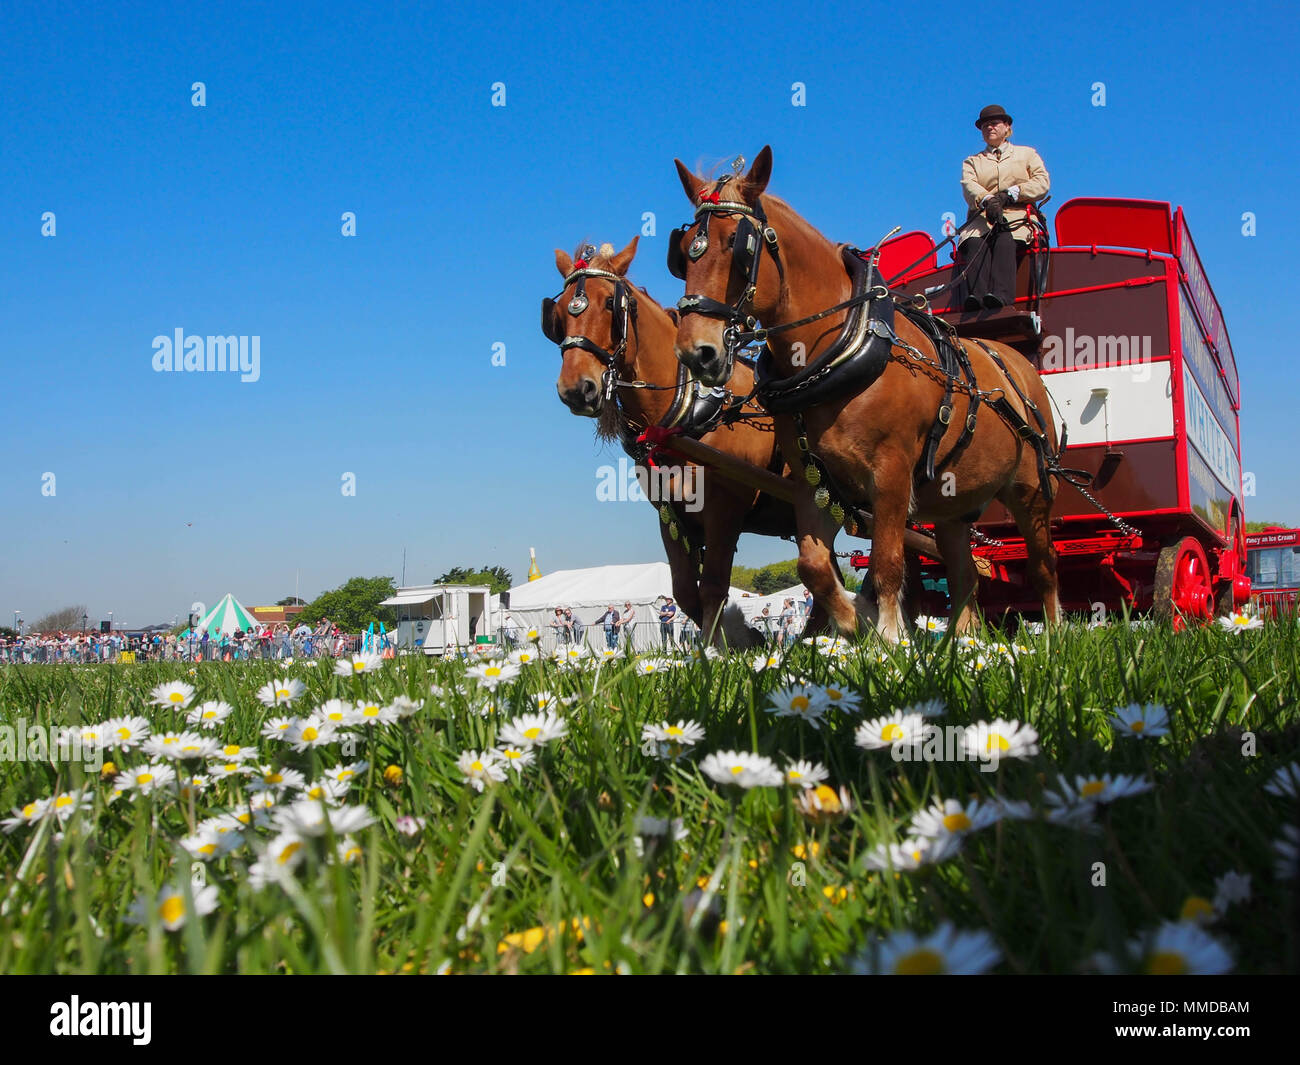 A horse drawn crriage displays at the Rural and Seaside show in Southsea, Portsmouth, England. - Stock Image